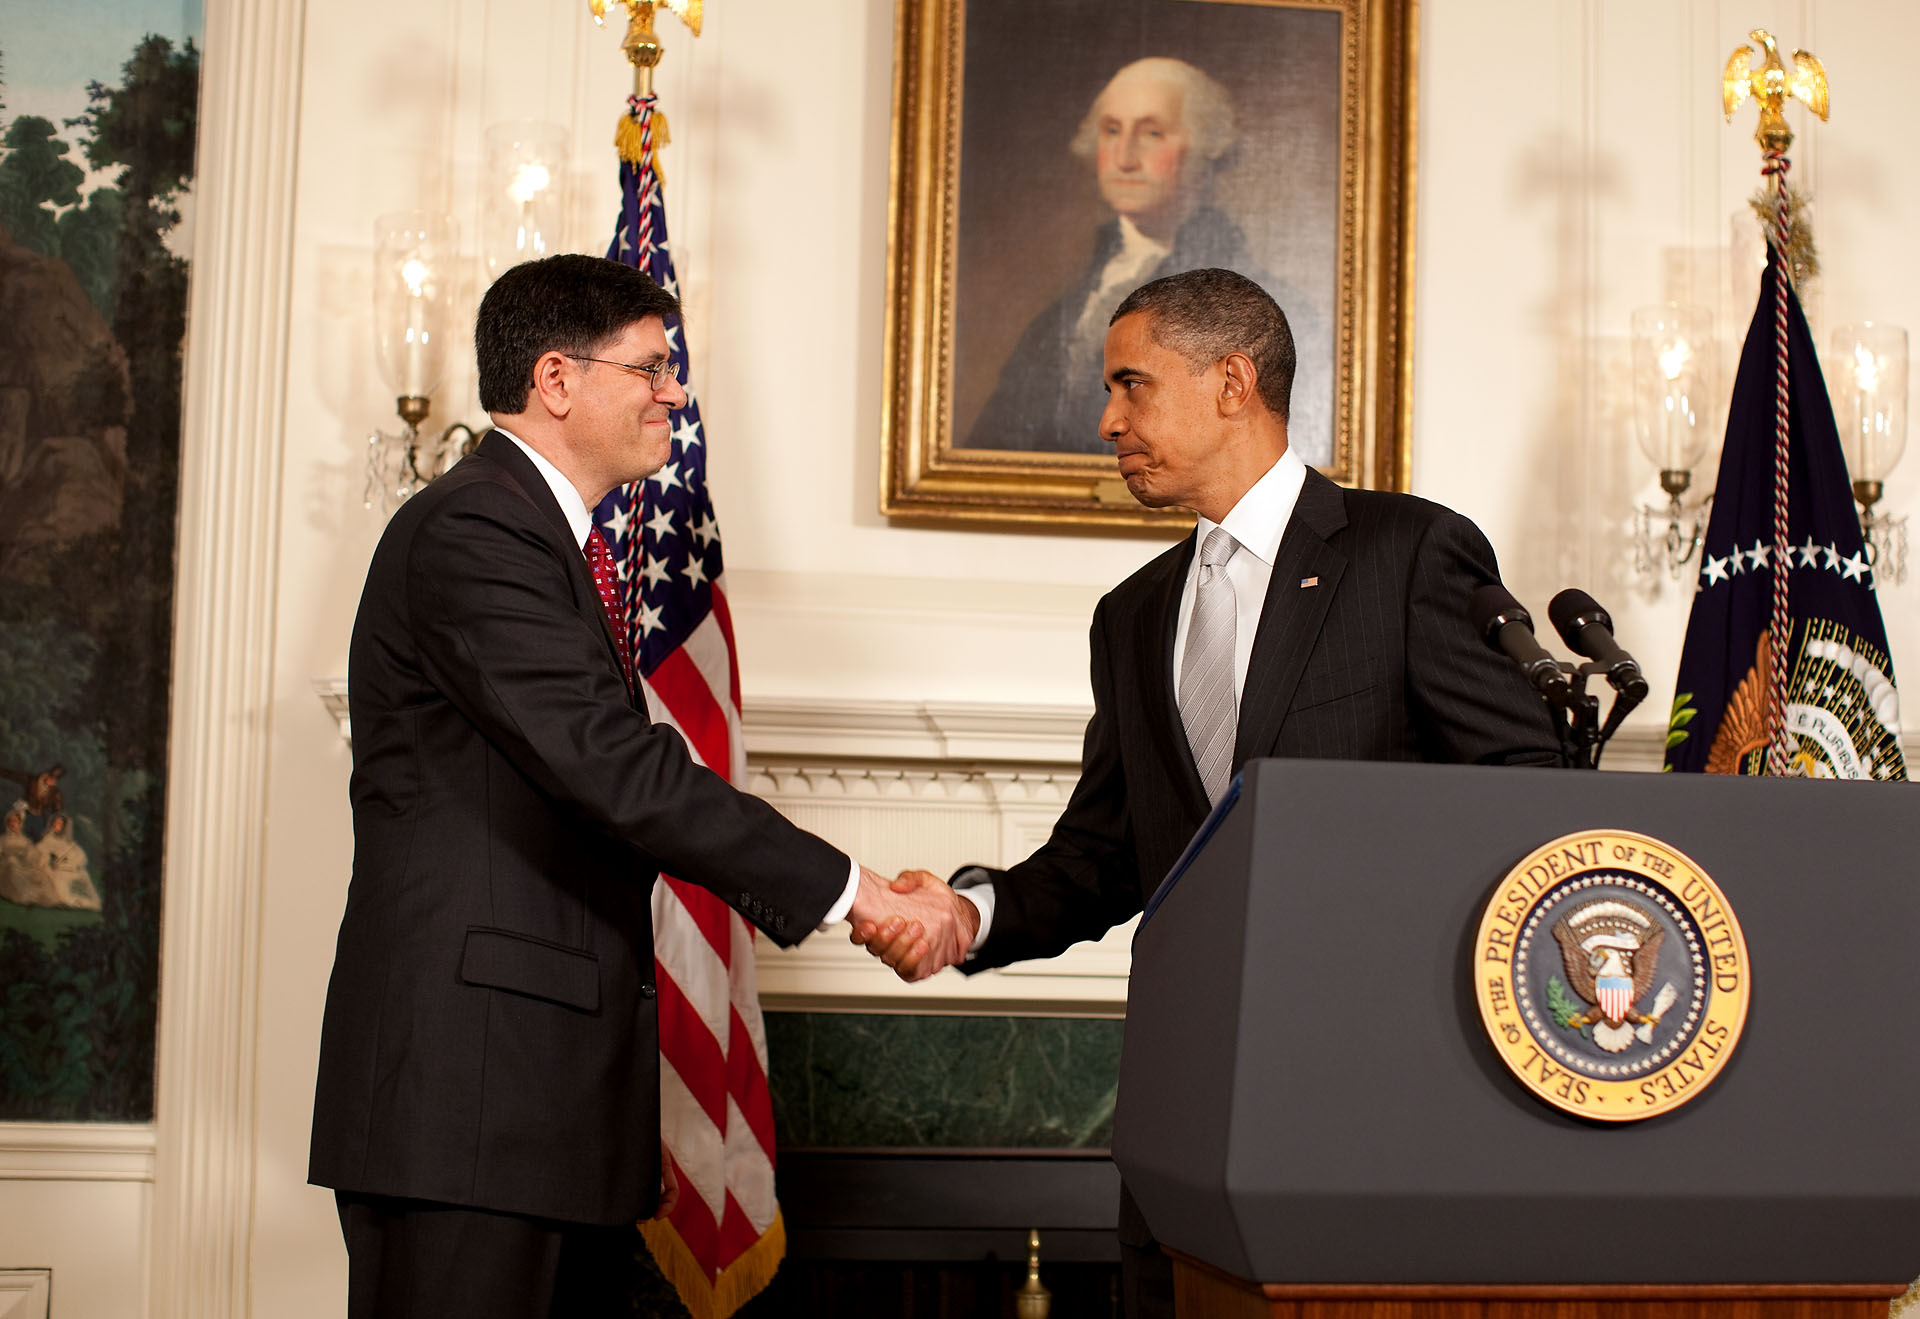 President Obama Shakes Hand with Jacob Lew, His Nominee for OMB Director